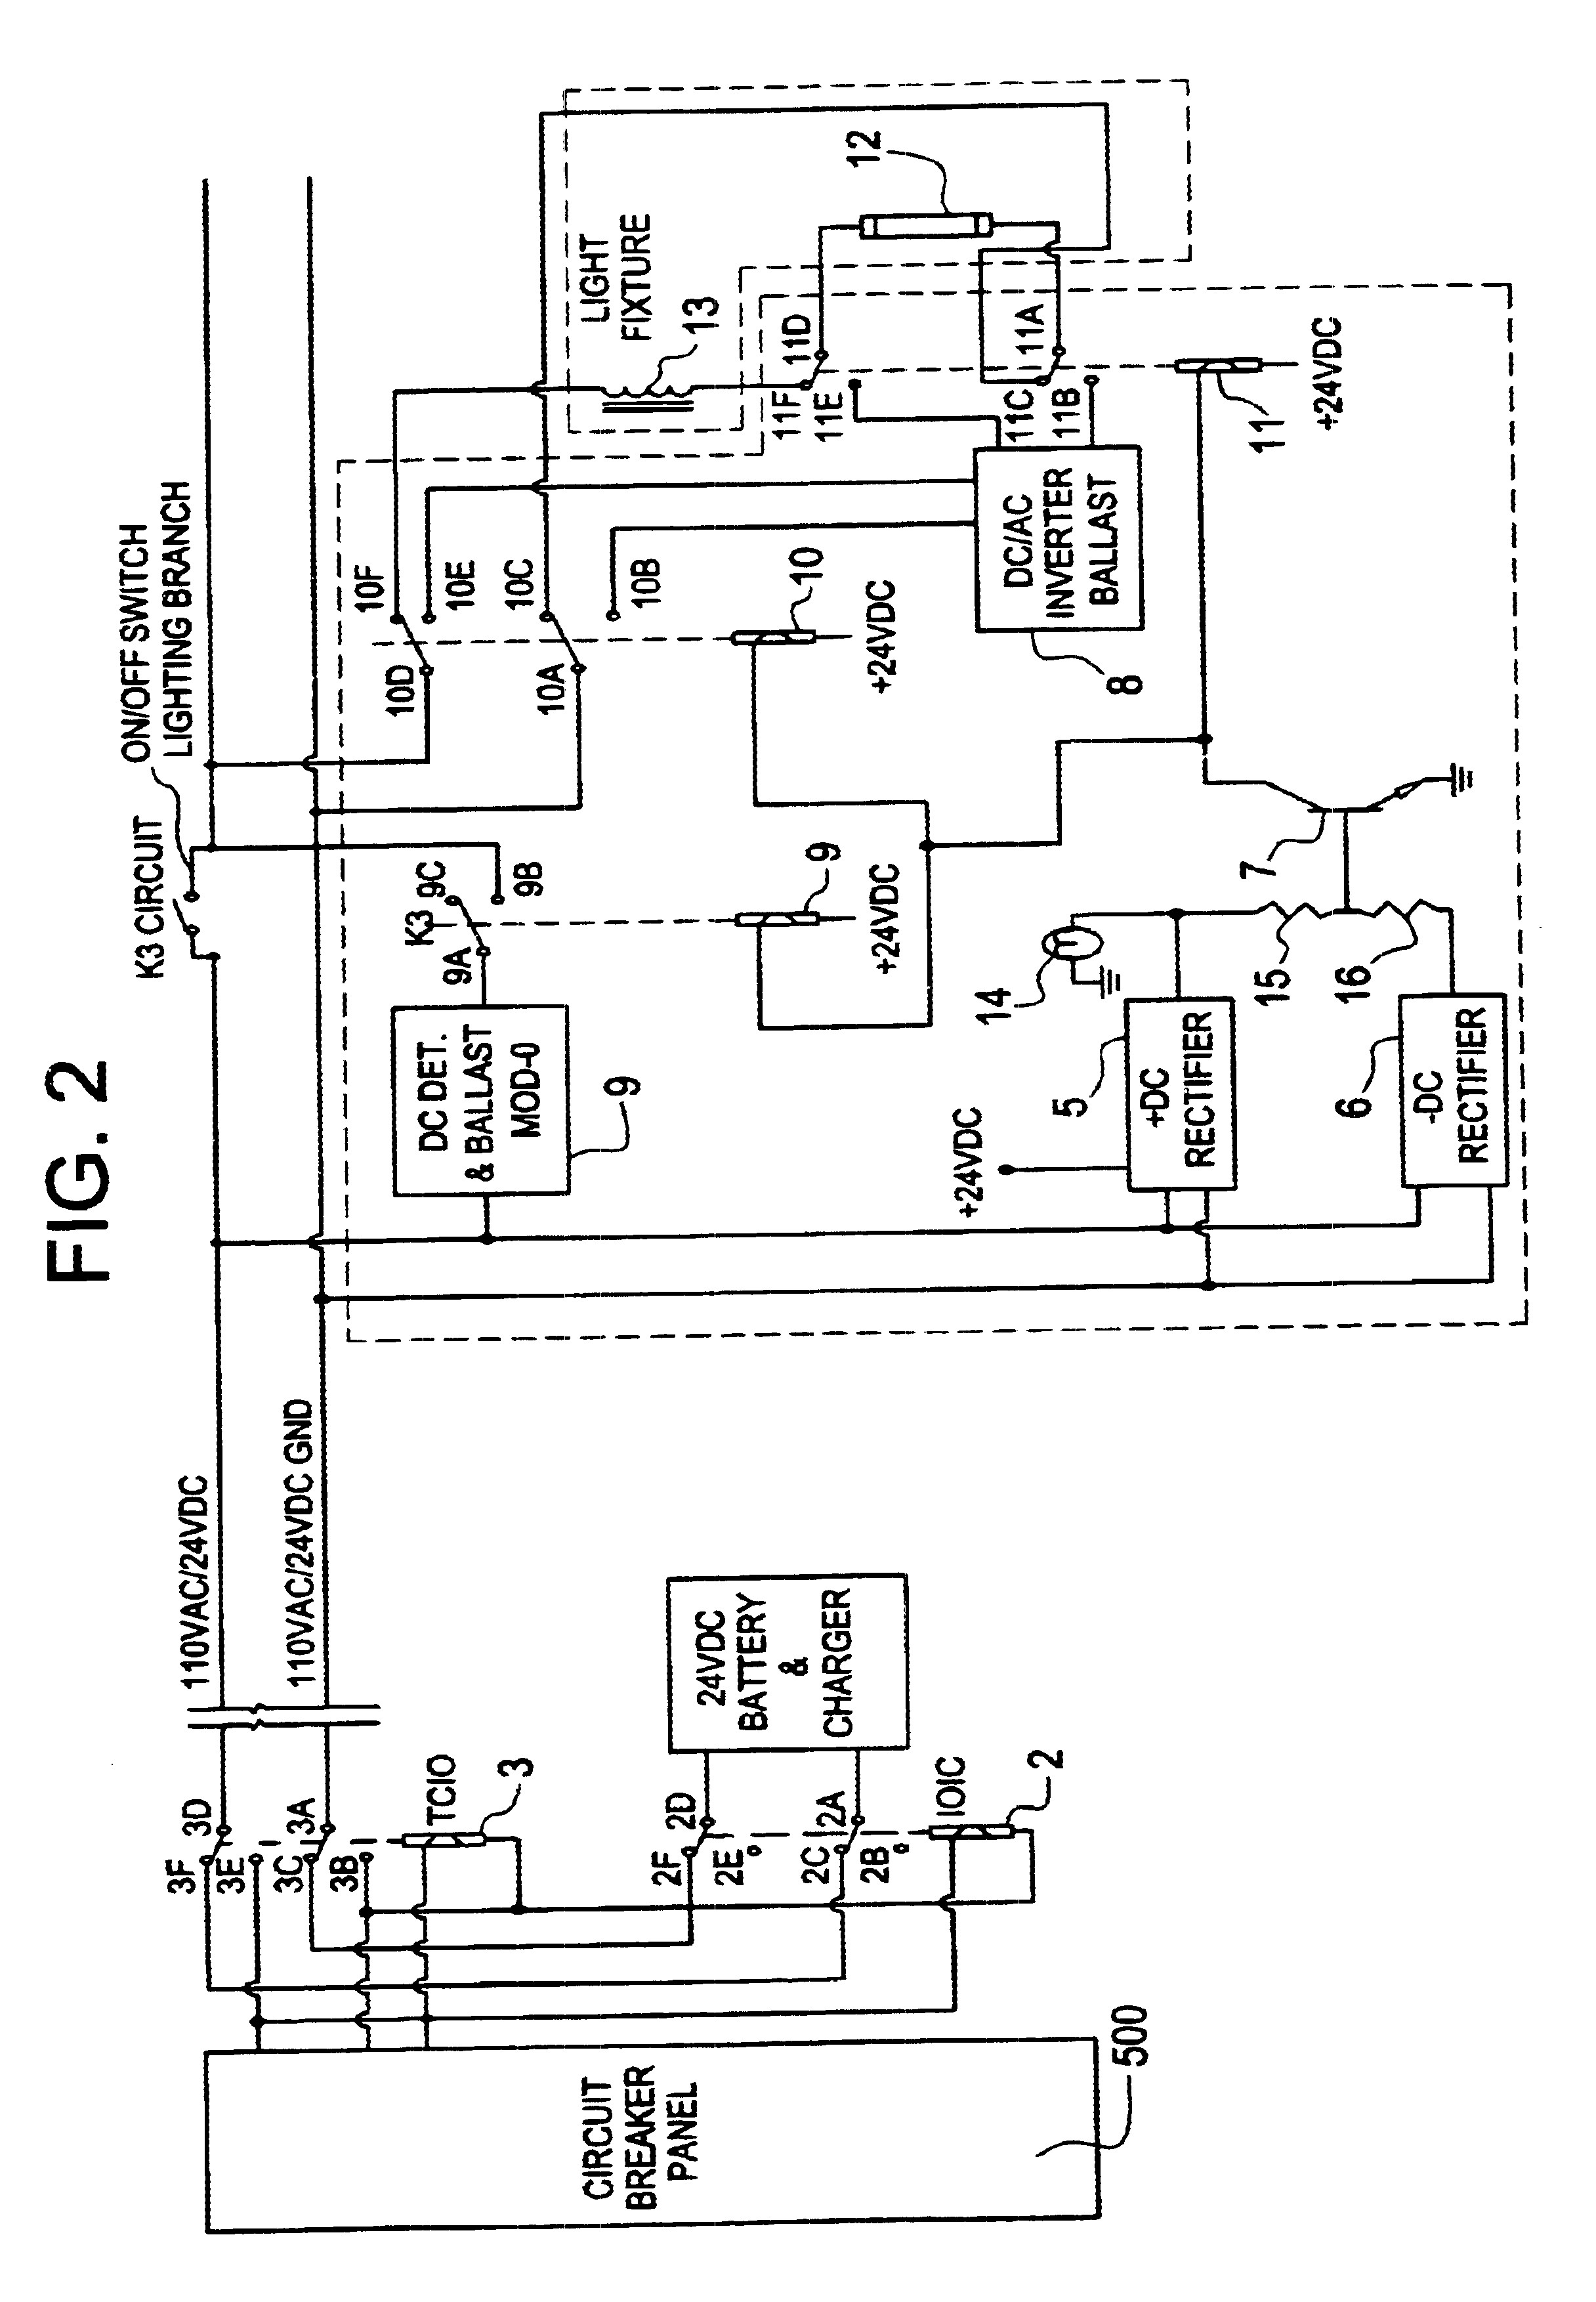 Bodine B50 Wiring Diagram Sample